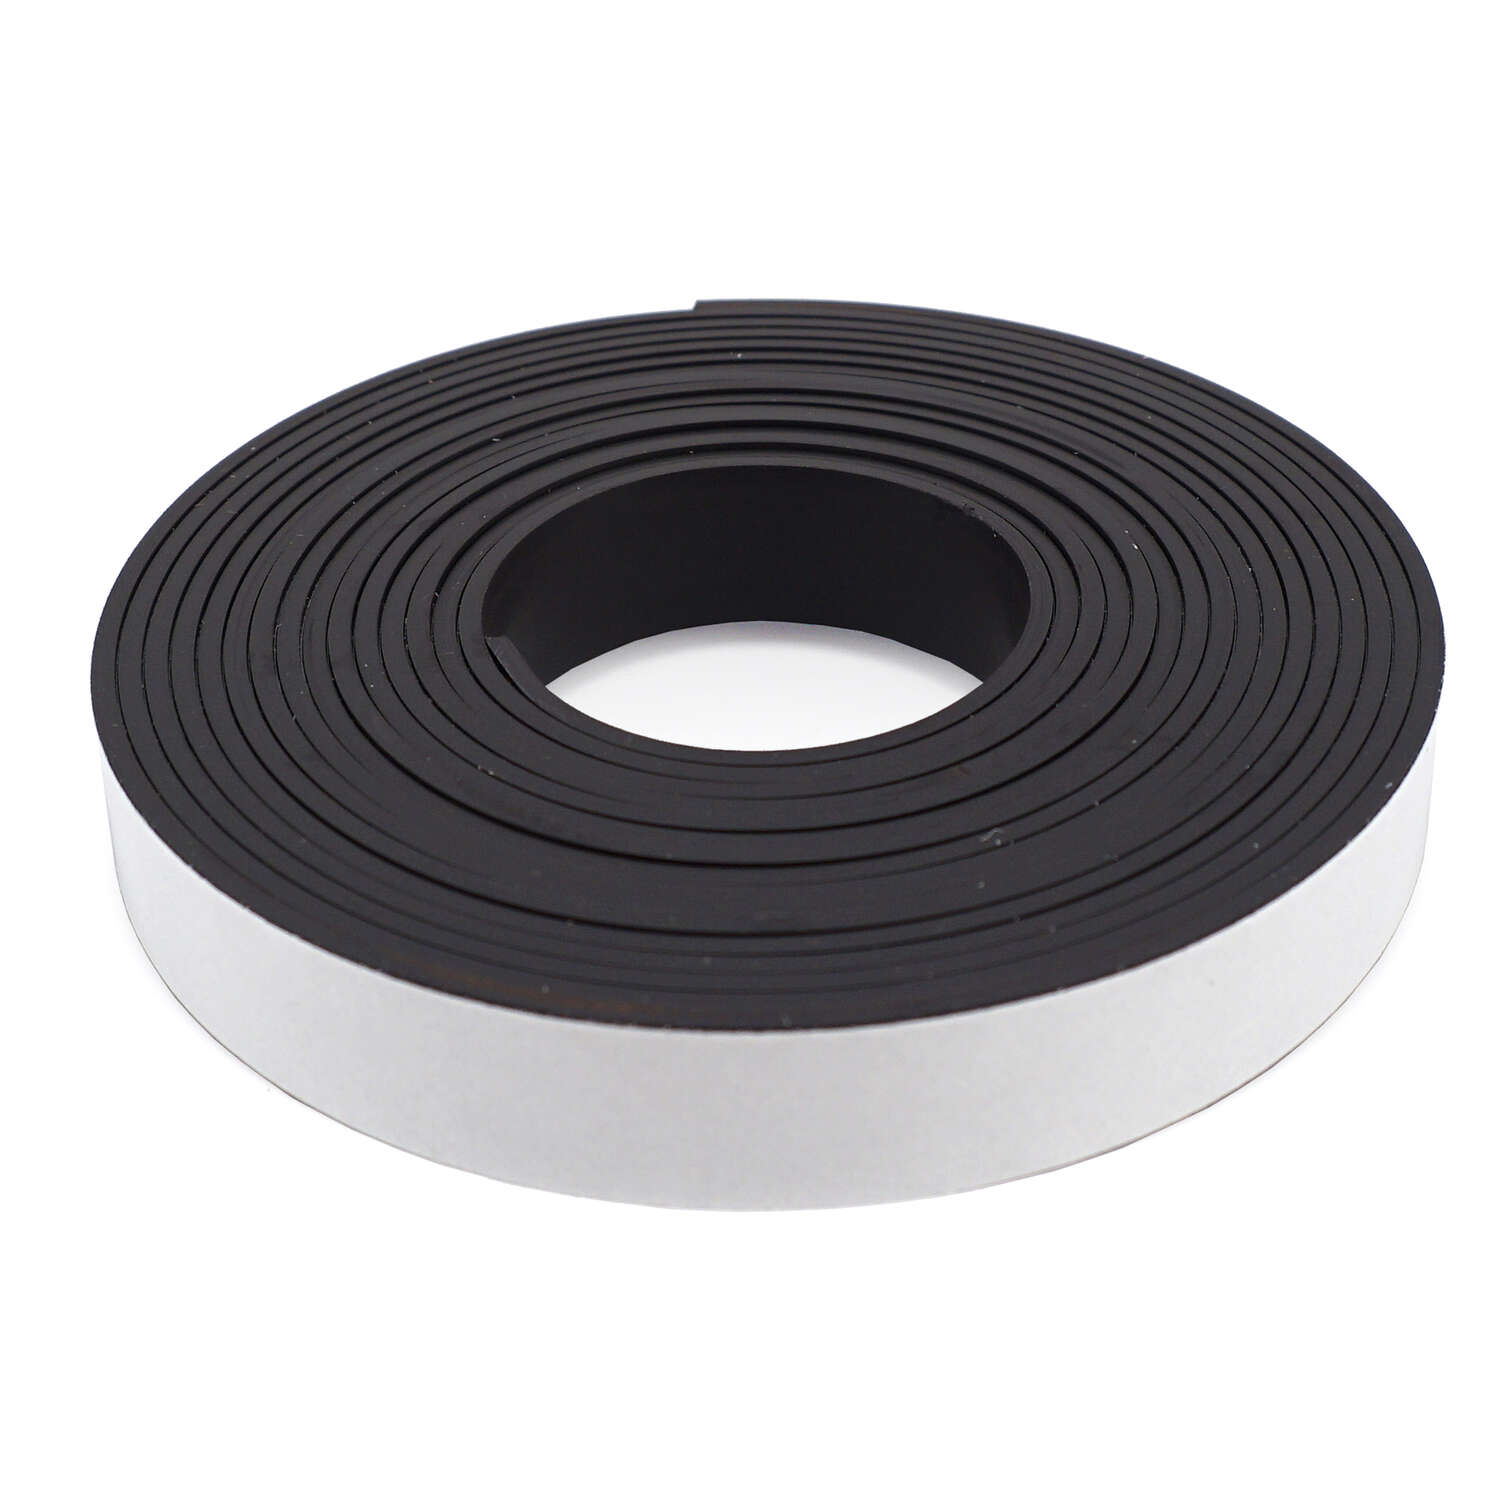 Master Magnetics  The Magnet Source  .5 in. W x 120 in. L Mounting Tape  Black